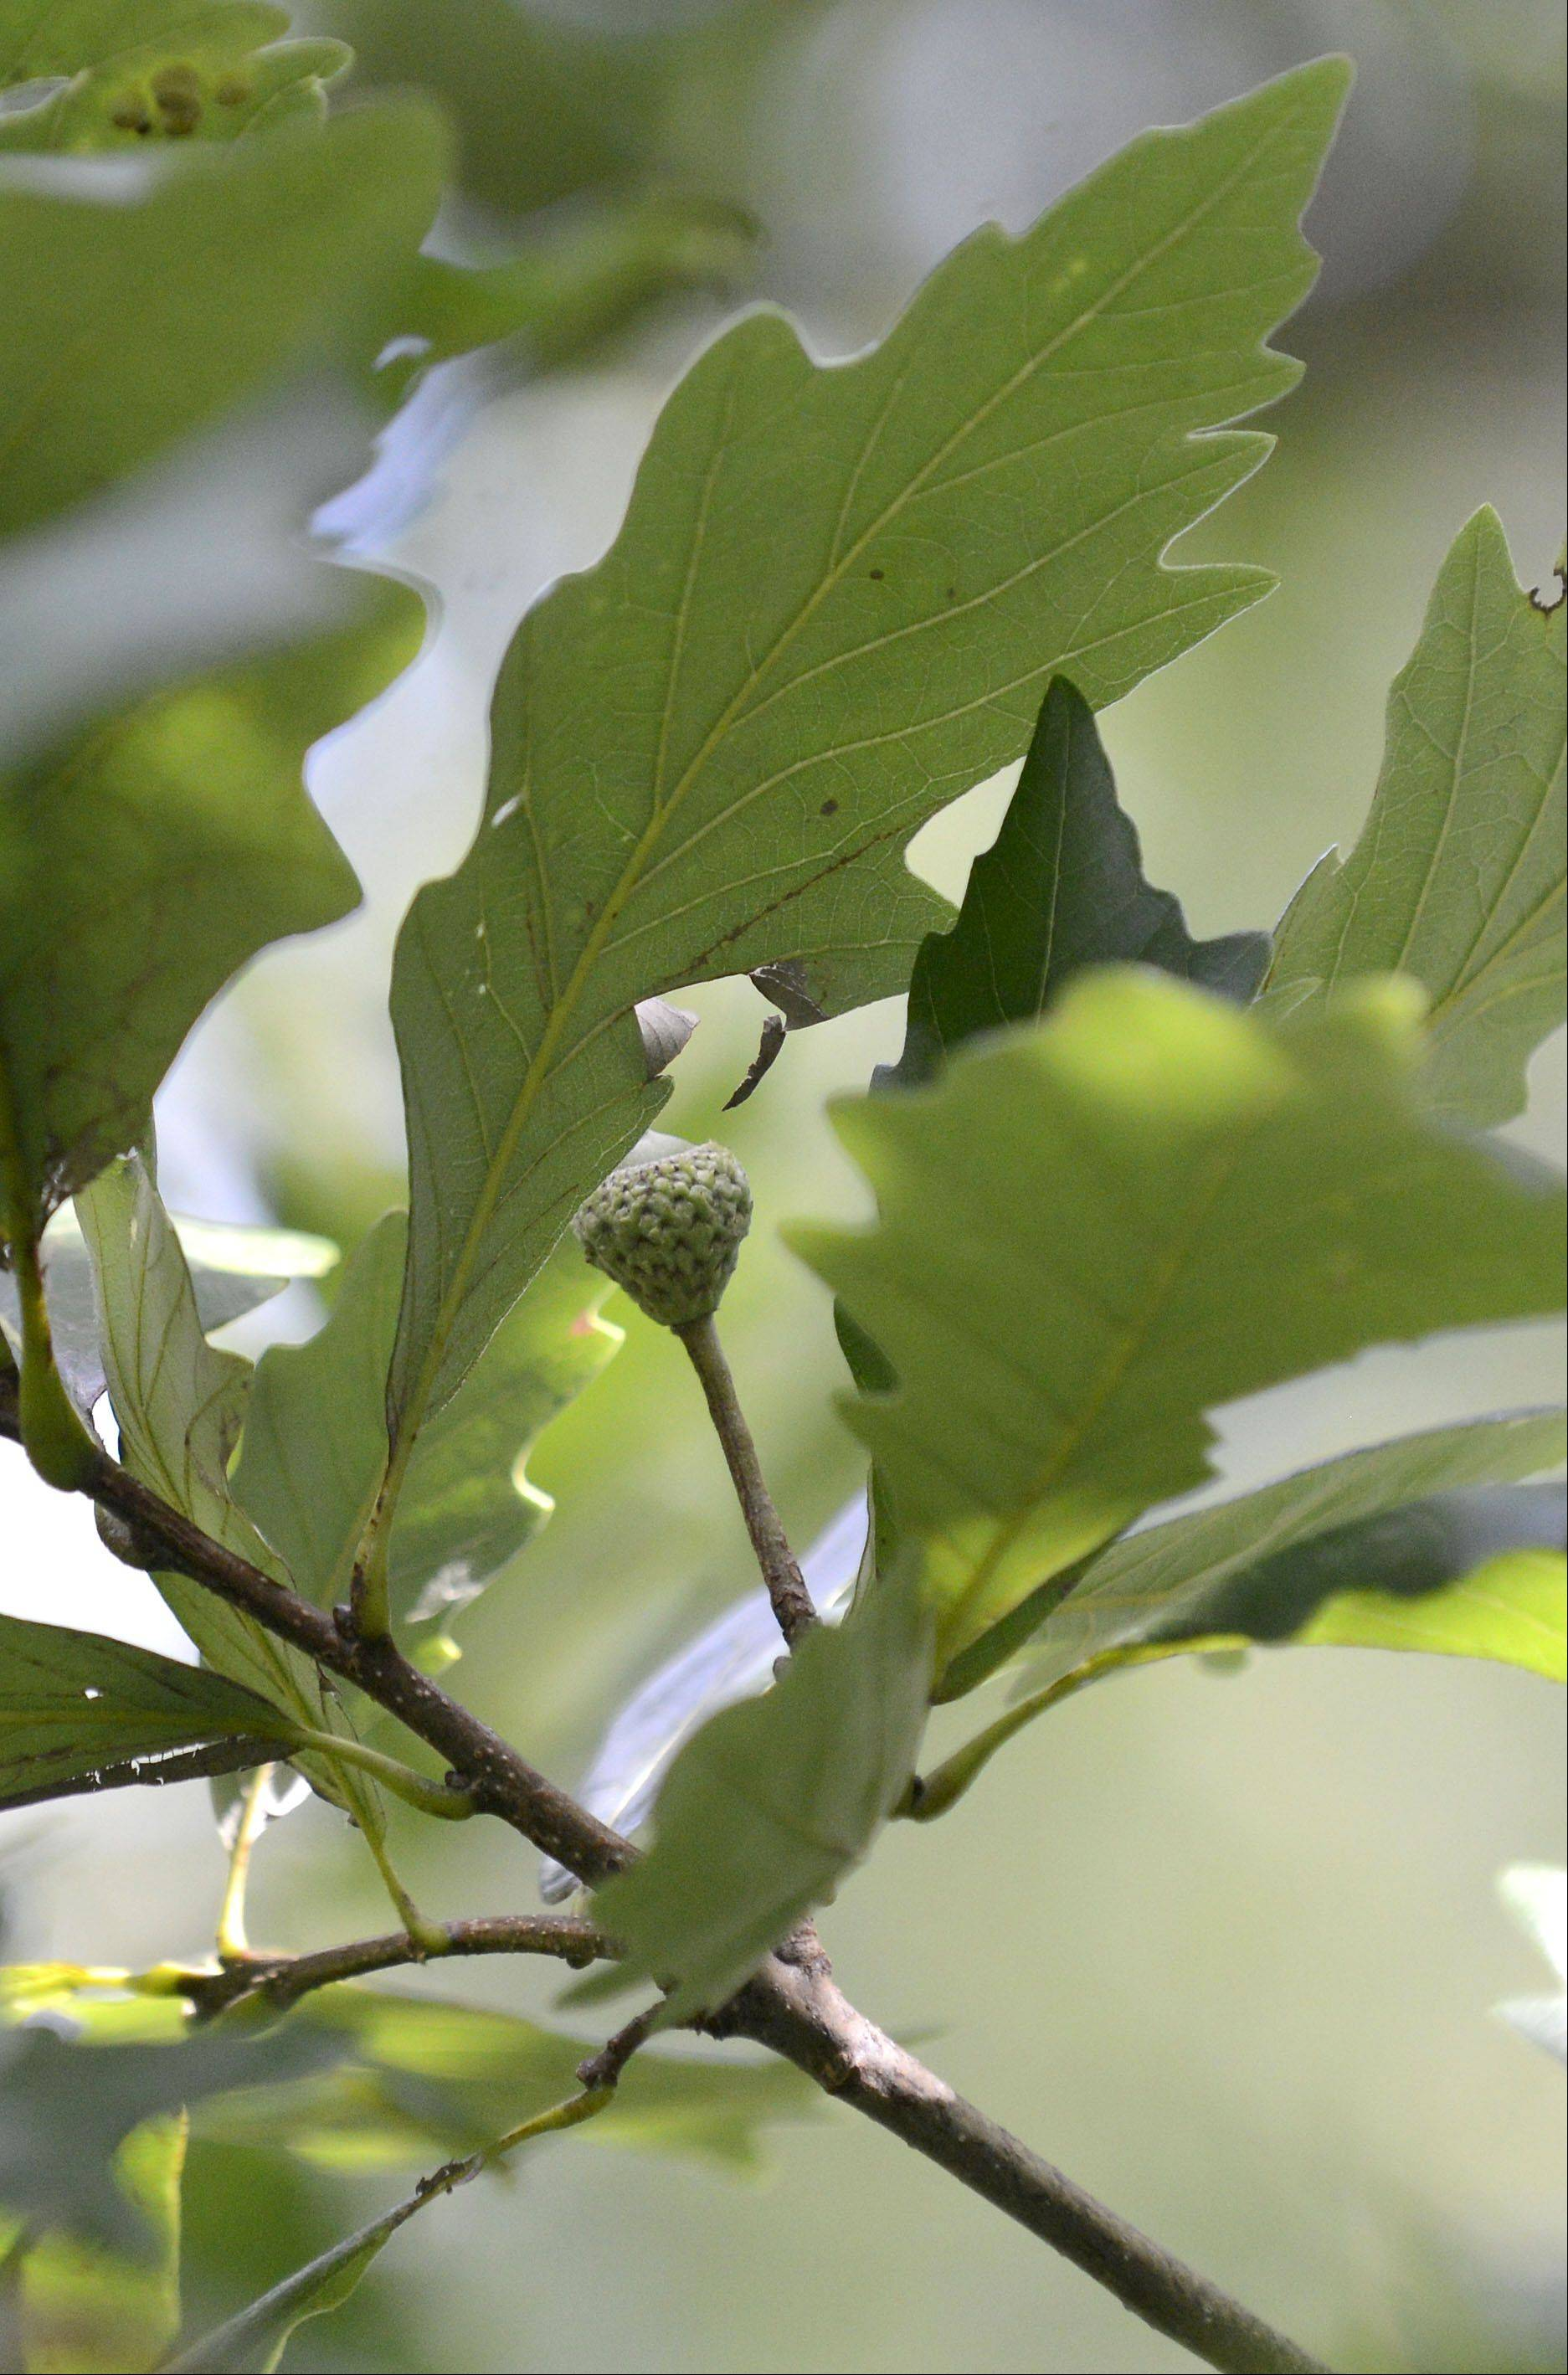 Acorns on swamp white oaks grow from a long stalk attached at the base of the acorn.